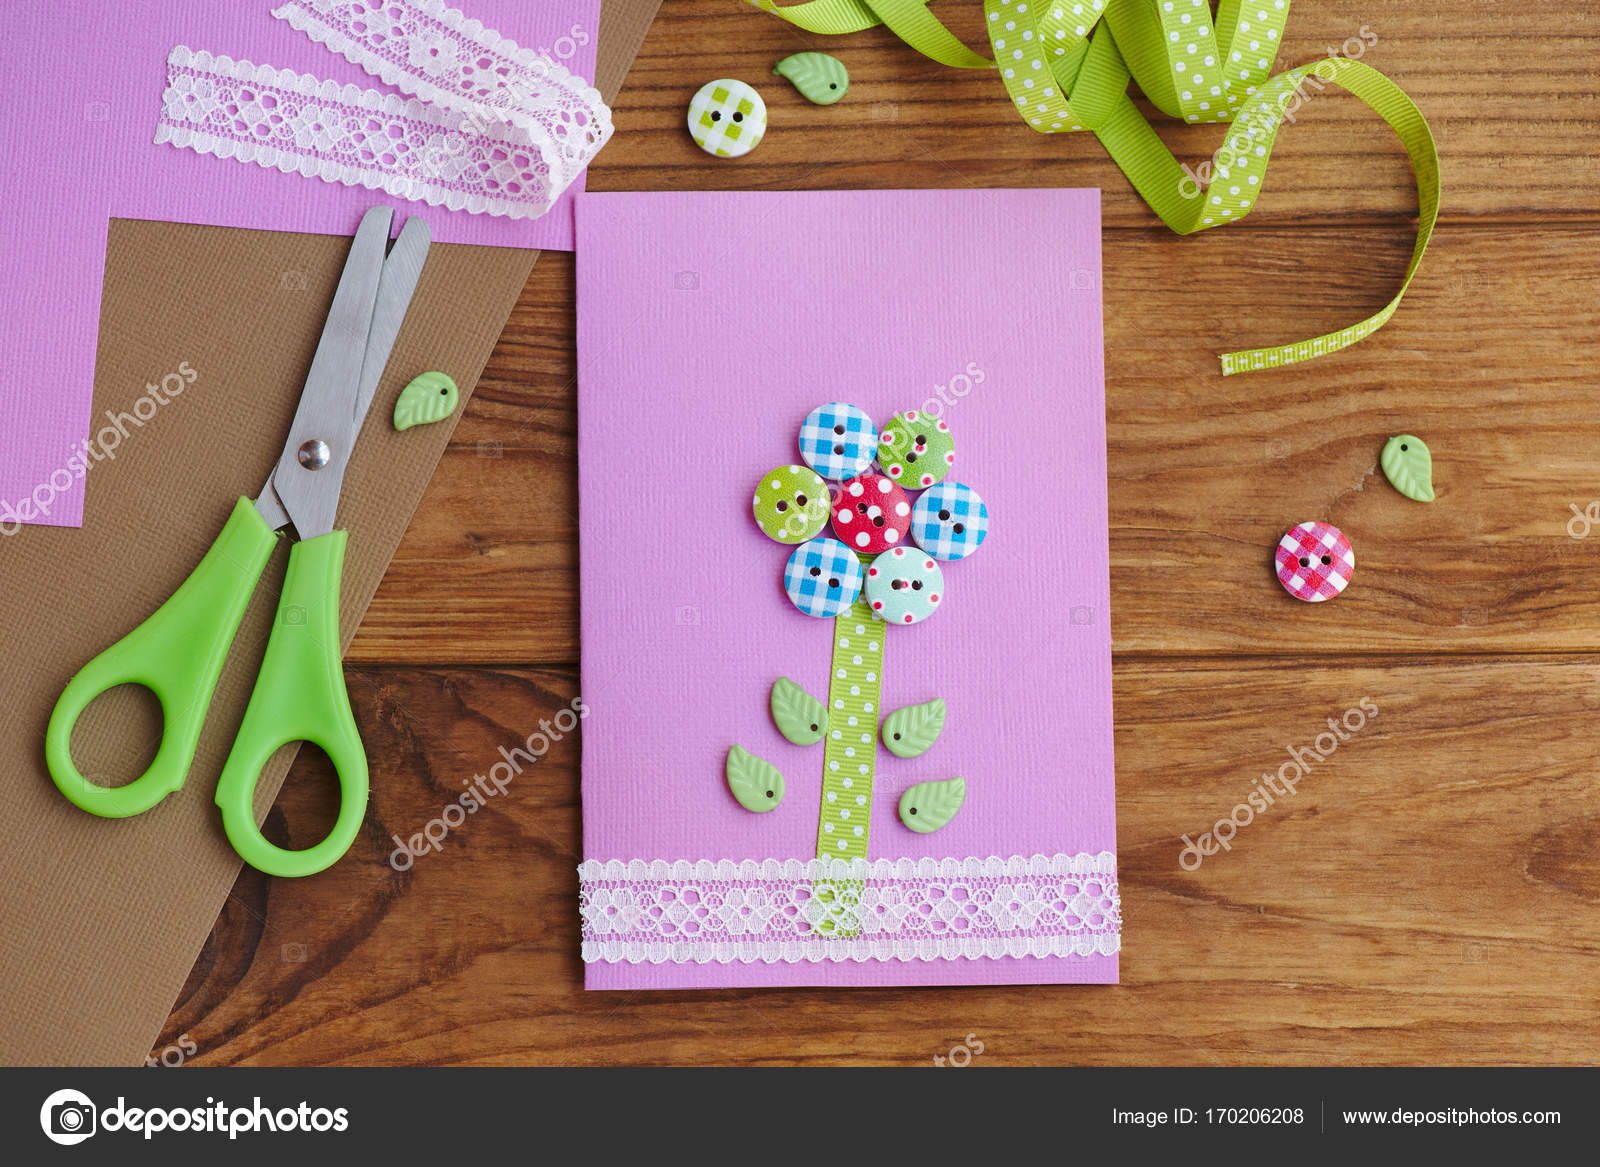 Greeting Paper Card For Moms Birthday Or Mothers Day Fathers Kids Workplace Crafts Idea Easy Art And Craft With